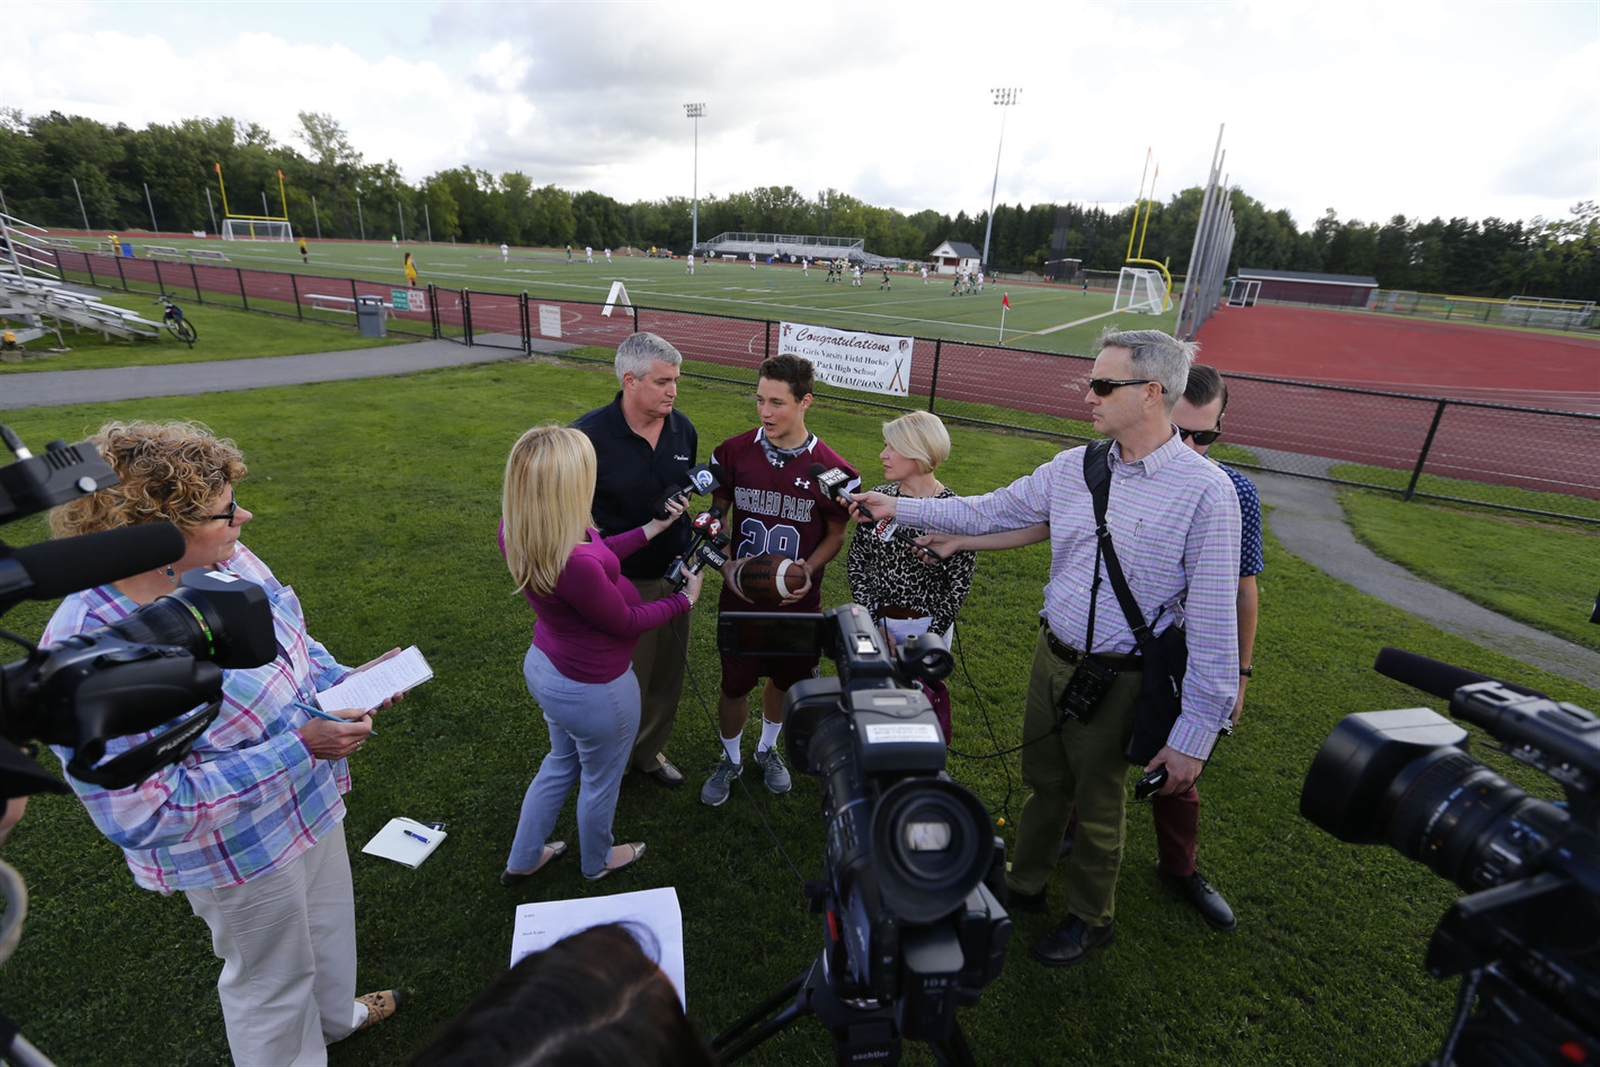 Jacob Kohler and his parents, Scott and Lisa, speak with the media Sept. 2 at Orchard Park High School after New York State Education Commissioner MaryEllen Elia granted a stay, allowing him to play that night and through the season.